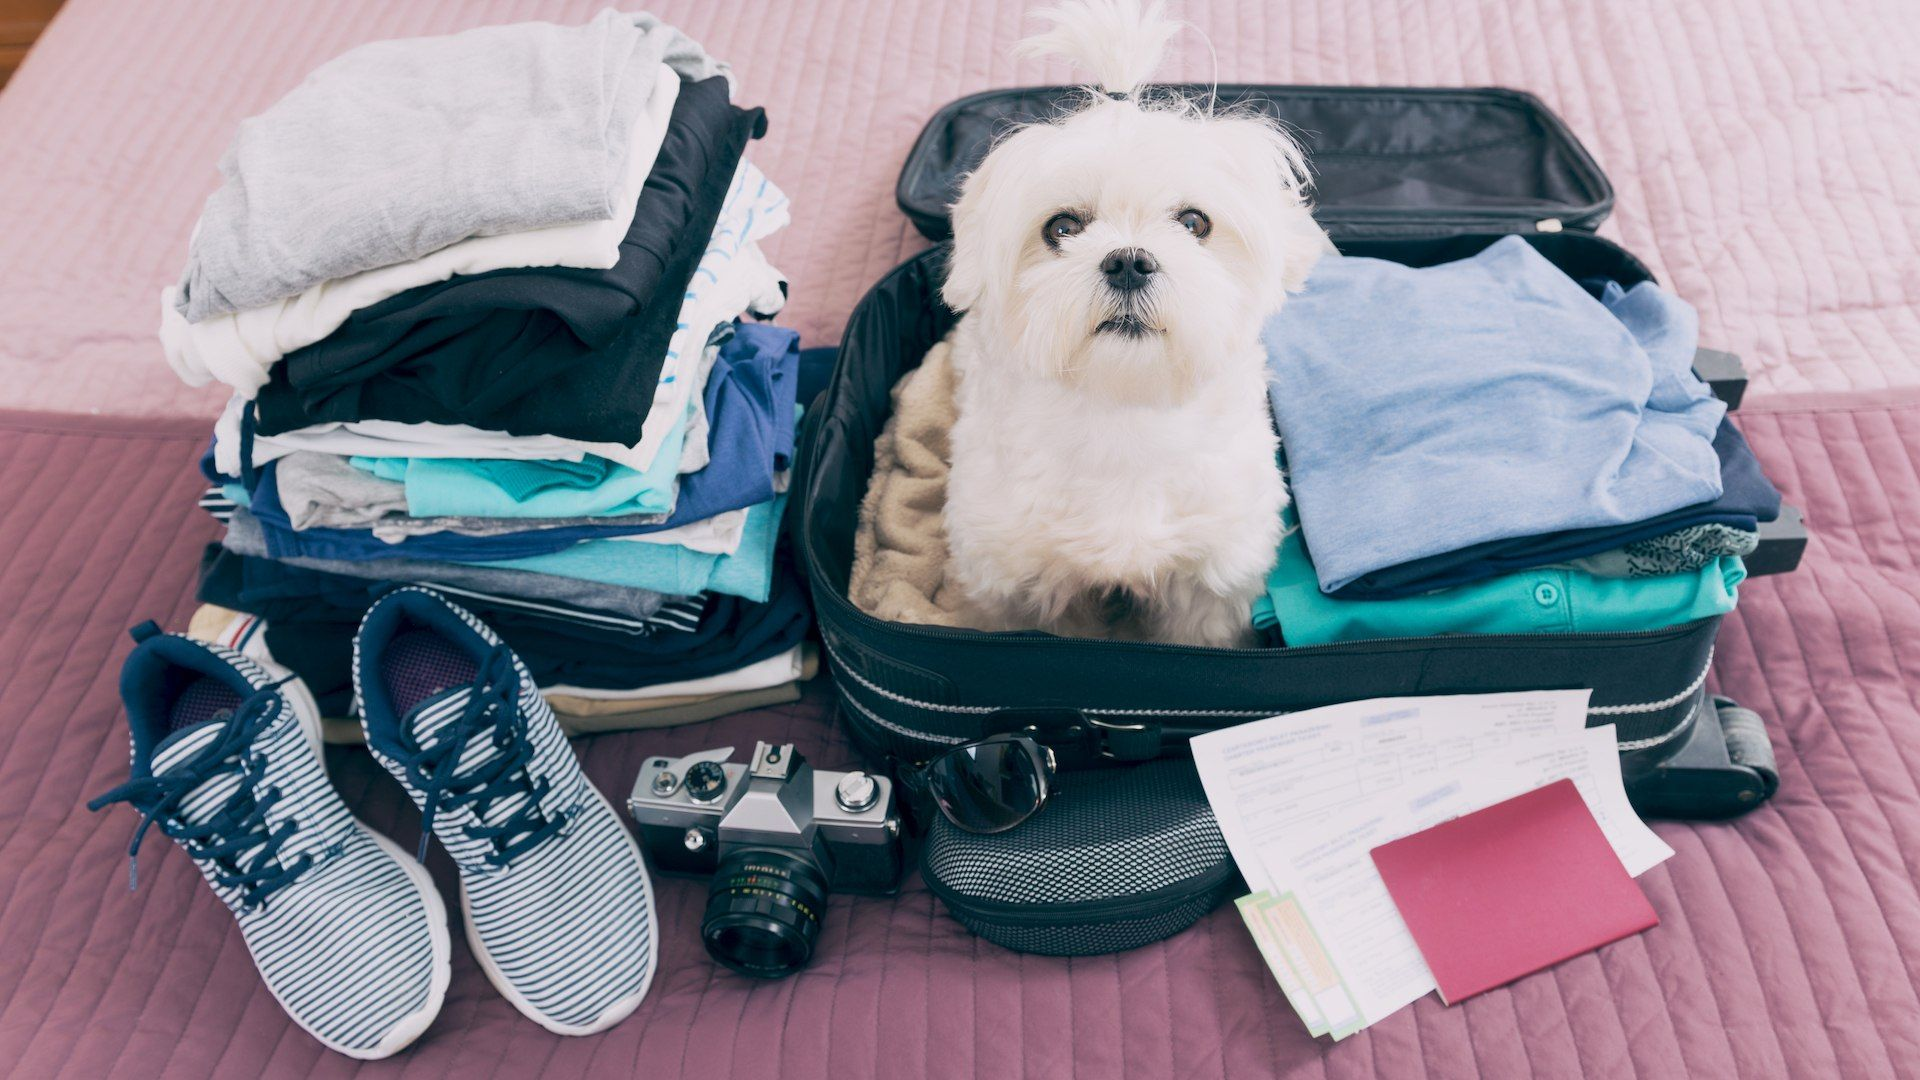 Before You Head To The Airport With Your Pet, Make